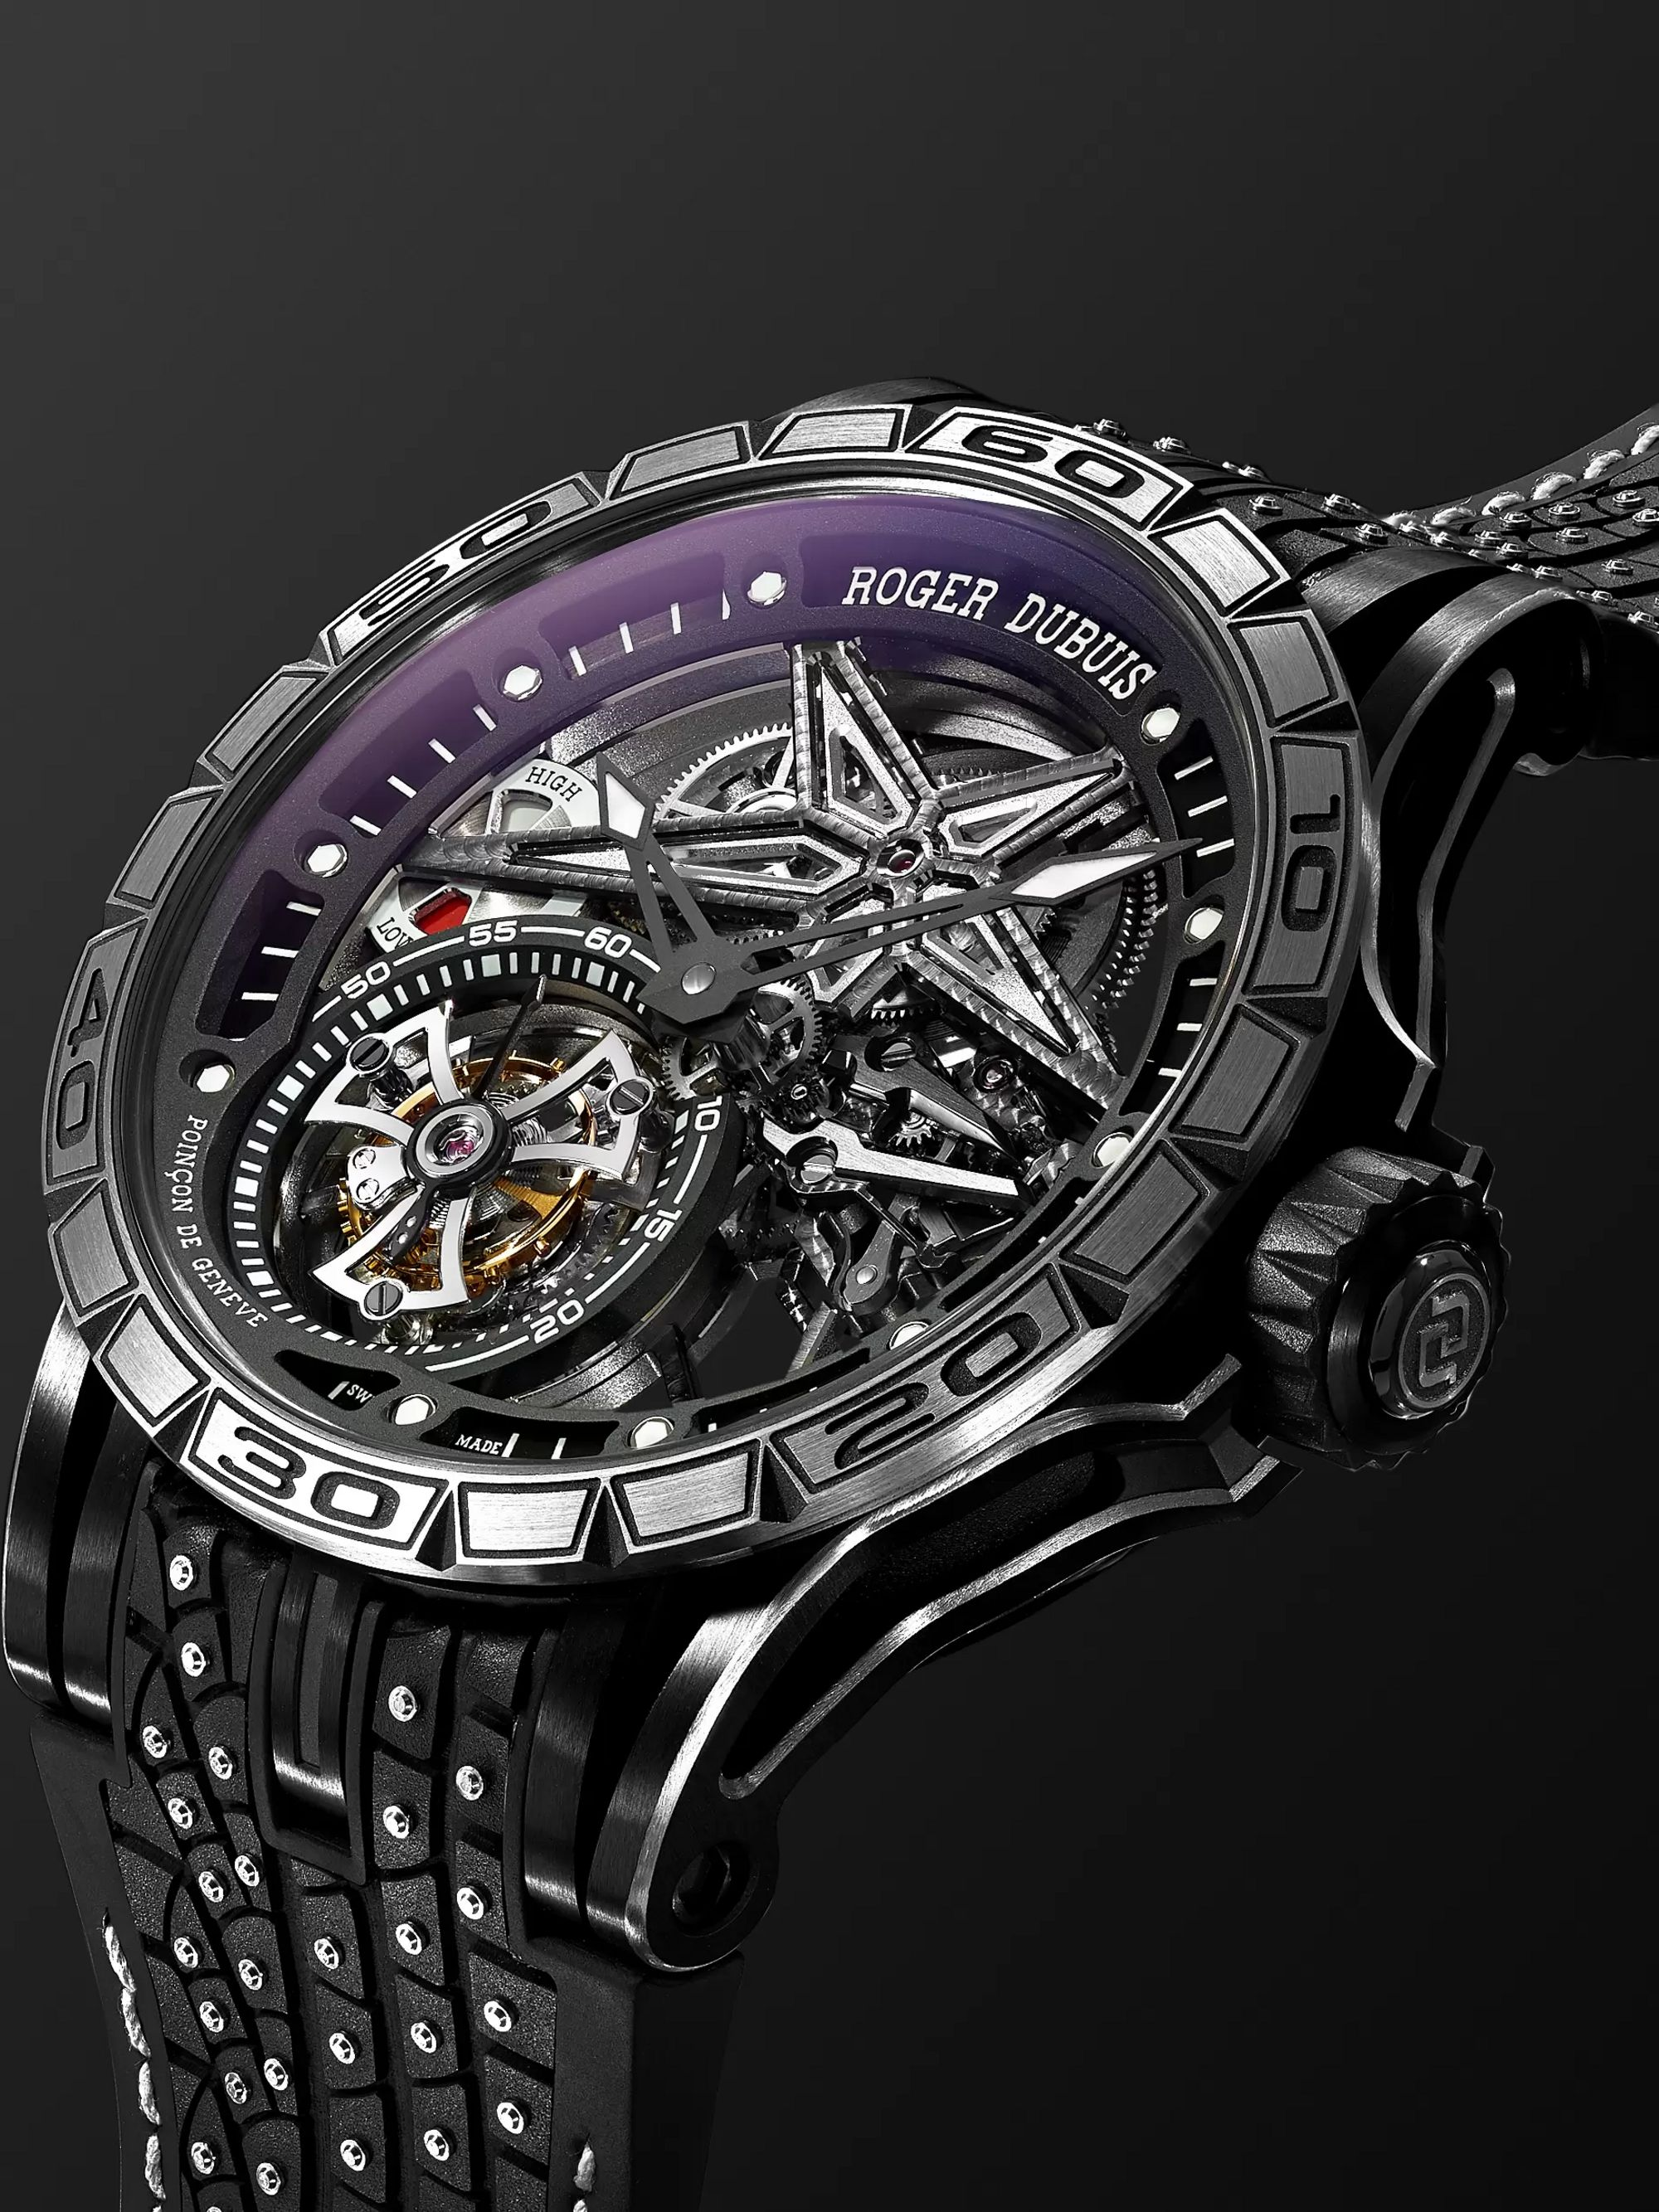 Roger Dubuis Excalibur Sottozero Pirelli Limited Edition Automatic Skeleton 45mm Titanium and Rubber Watch, Ref. No. RDDBEX0753